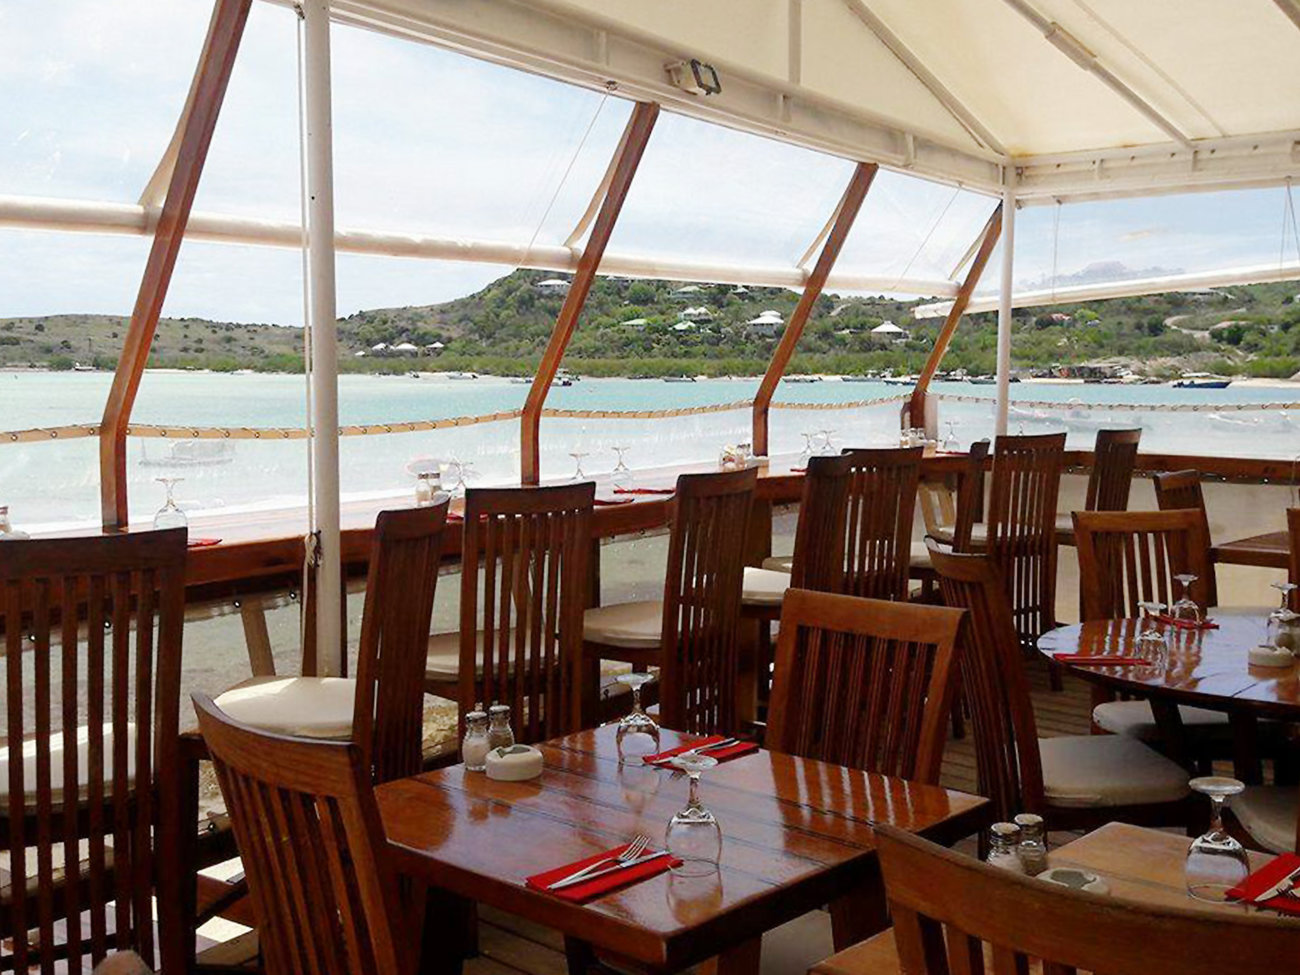 O'Corail Restaurant in St. Barts